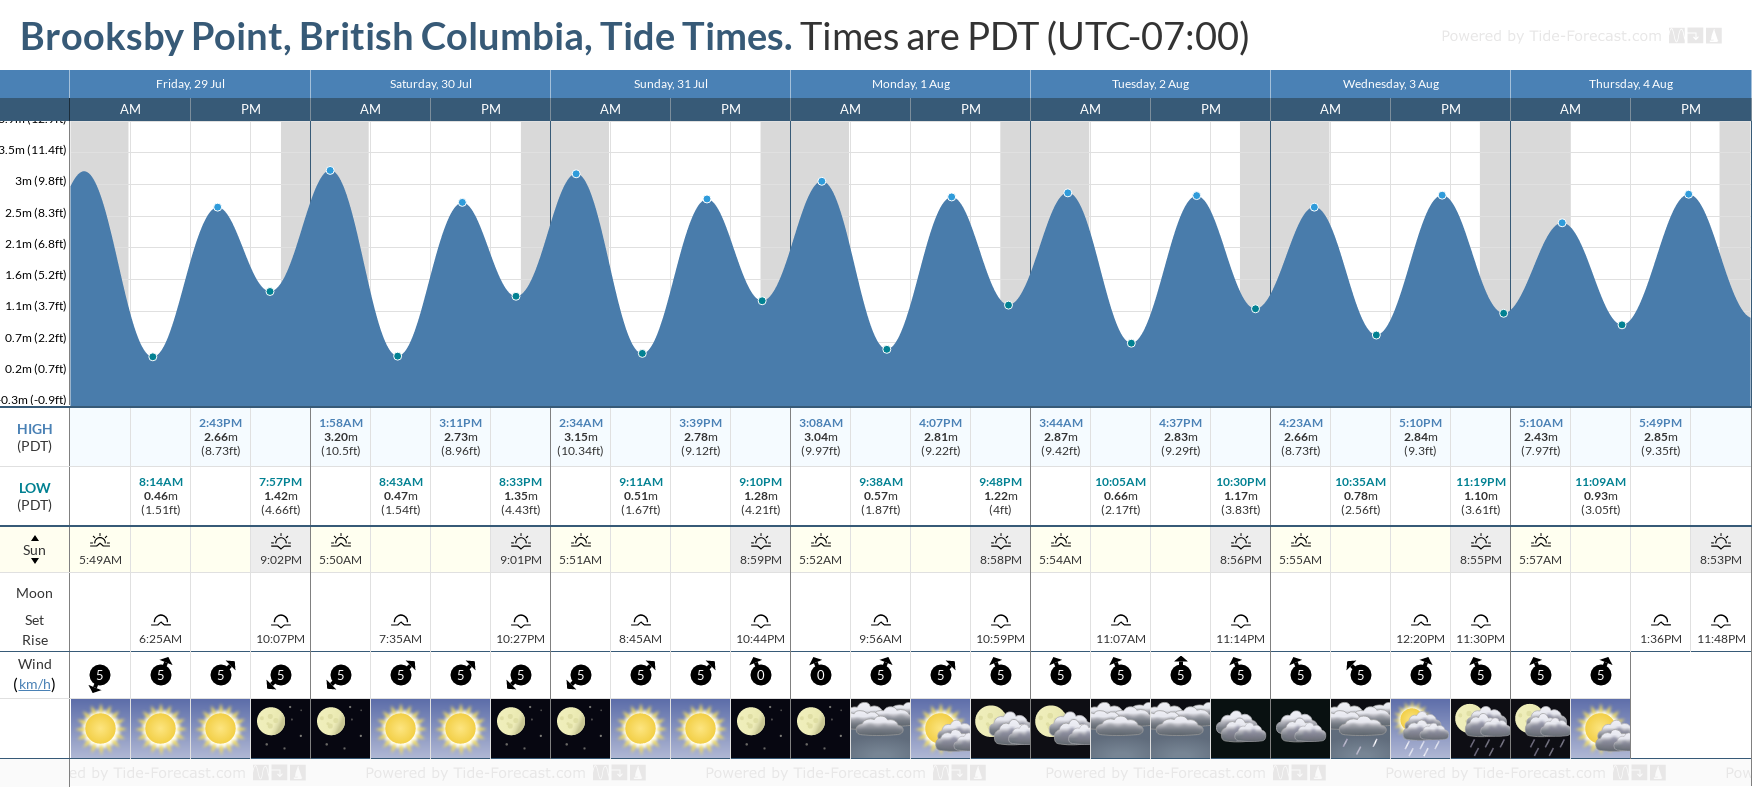 Brooksby Point, British Columbia Tide Chart including high and low tide tide times for the next 7 days